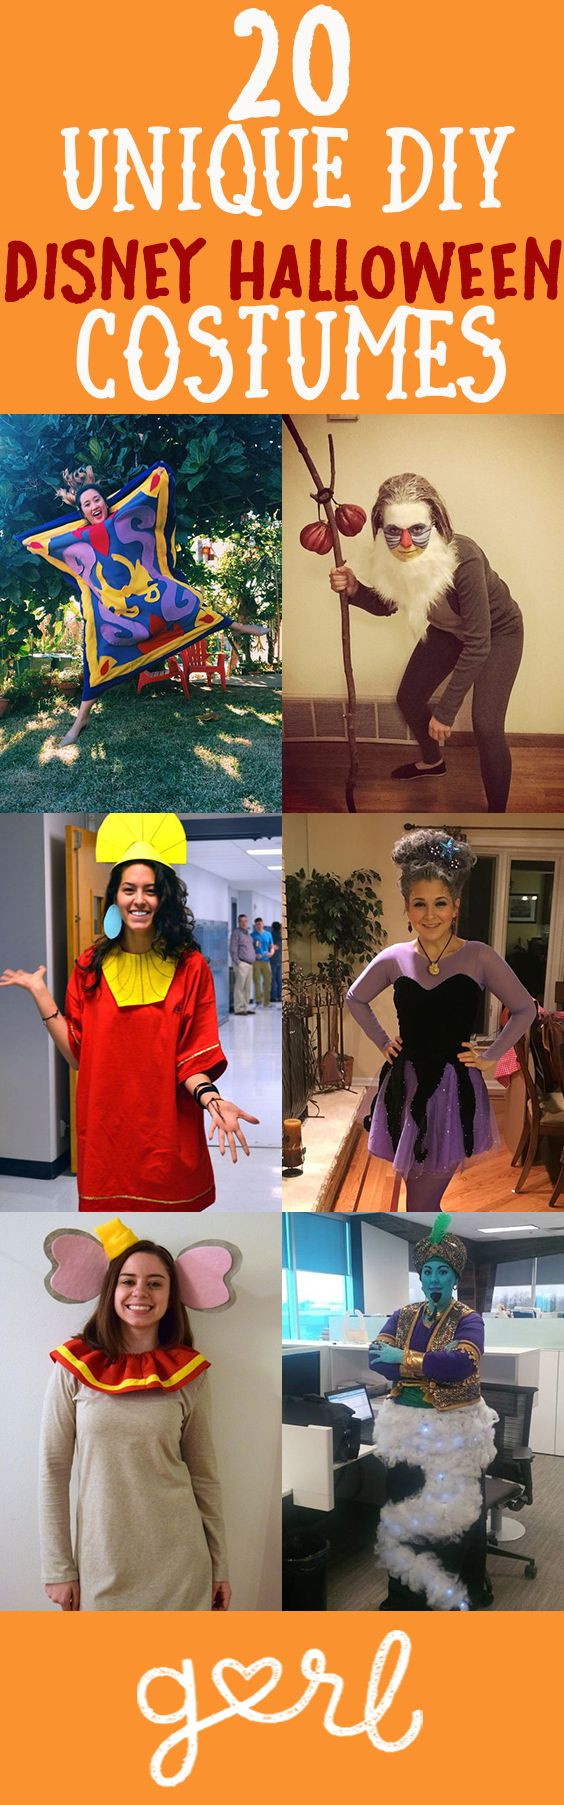 Best ideas about Disney Character Costumes DIY . Save or Pin Best 25 Character costumes ideas on Pinterest Now.